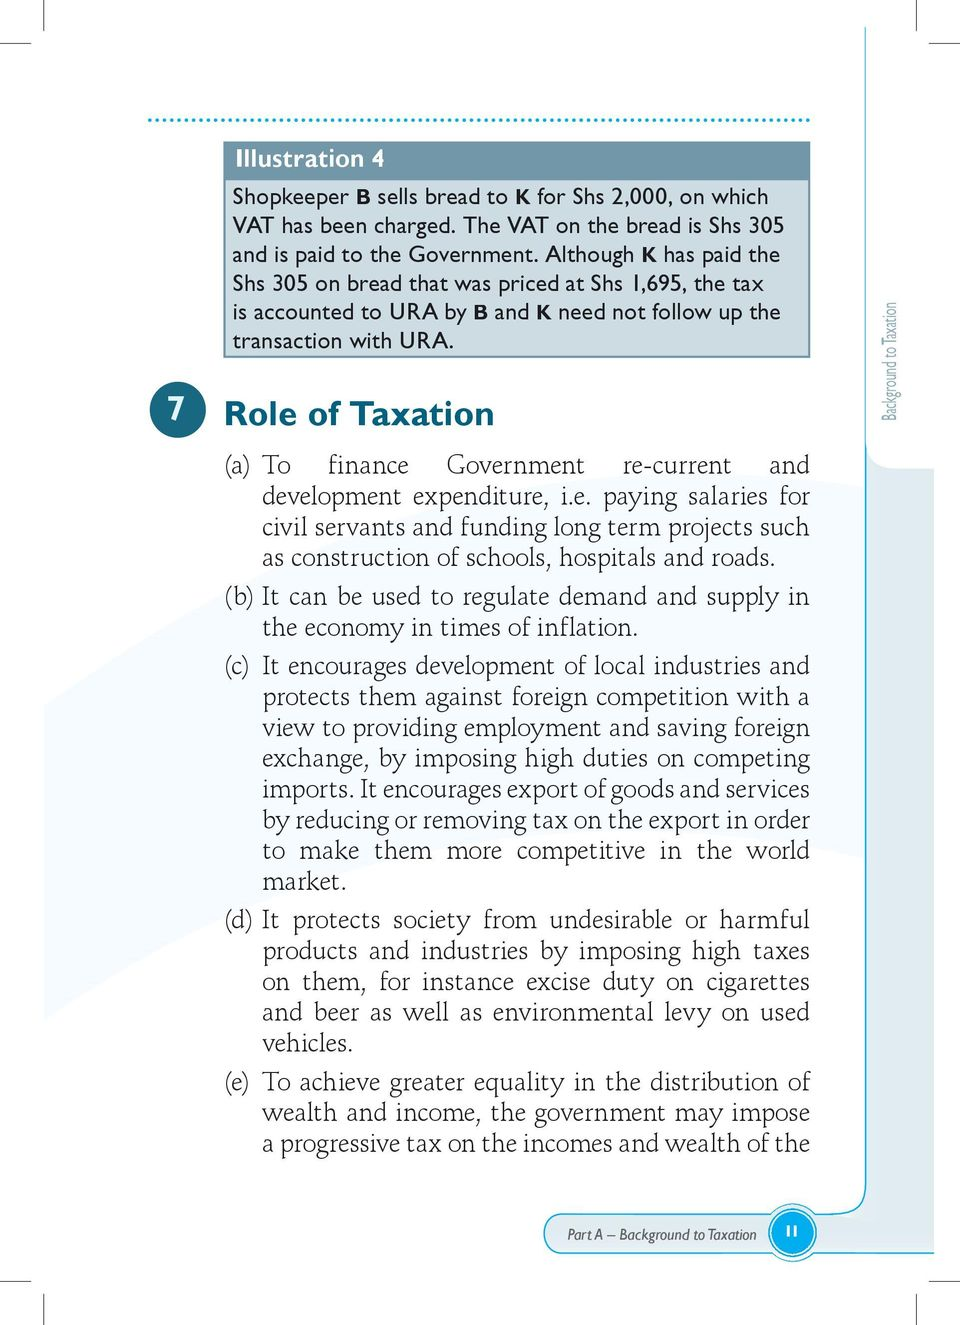 7 Role of Taxation Background to Taxation (a) To finance Government re-current ecu e and development expenditure, i.e. paying salaries for civil servants and funding long term projects such as construction of schools, hospitals and roads.